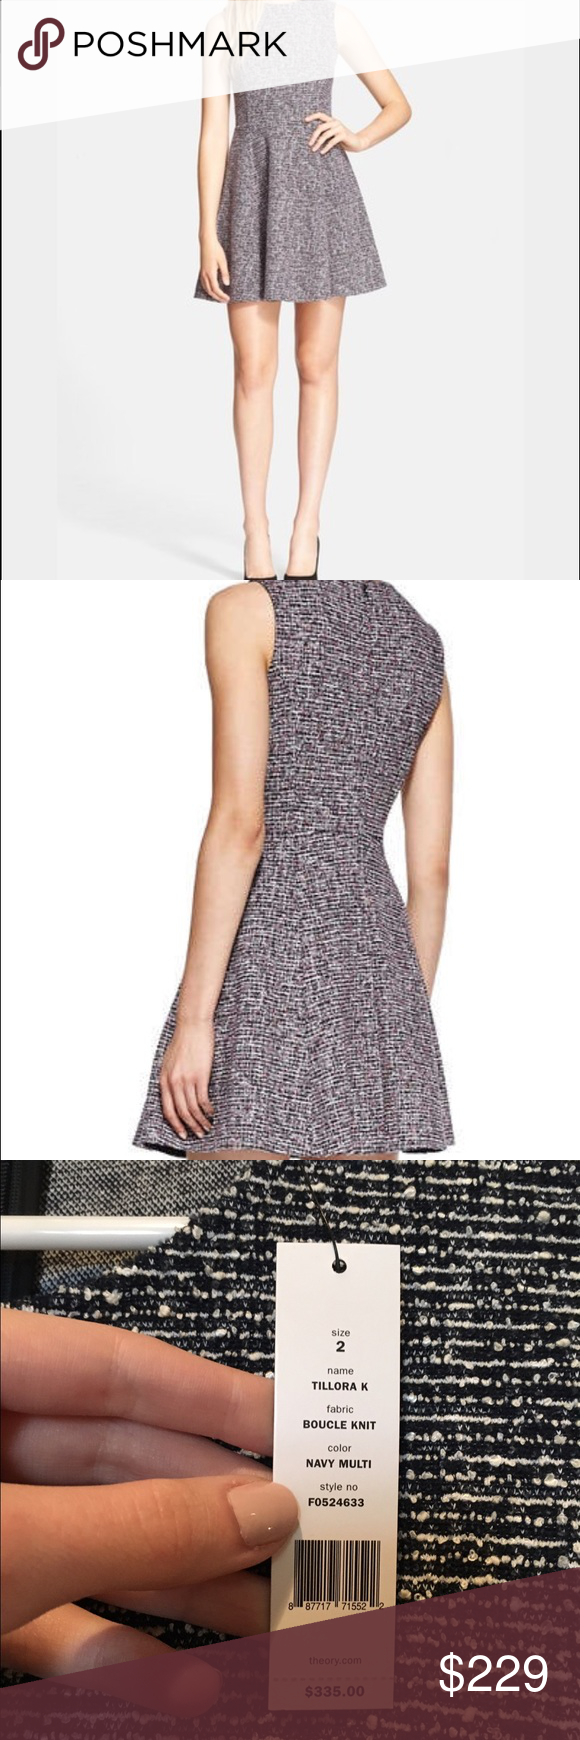 Tillora' Tweed Fit & Flare Dress Theory Tillora' Tweed Fit & Flare Dress. Retails $335. This texture-rich Theory dress has a seamless flared skirt. Crew neckline. Sleeveless. Hidden back zip. Unlined. New with Tags!   Fabric: Tweed-like knit. 75% cotton/12% polyamide/10% viscose/3% elastane. Dry clean. Made in the USA. Theory Dresses Mini